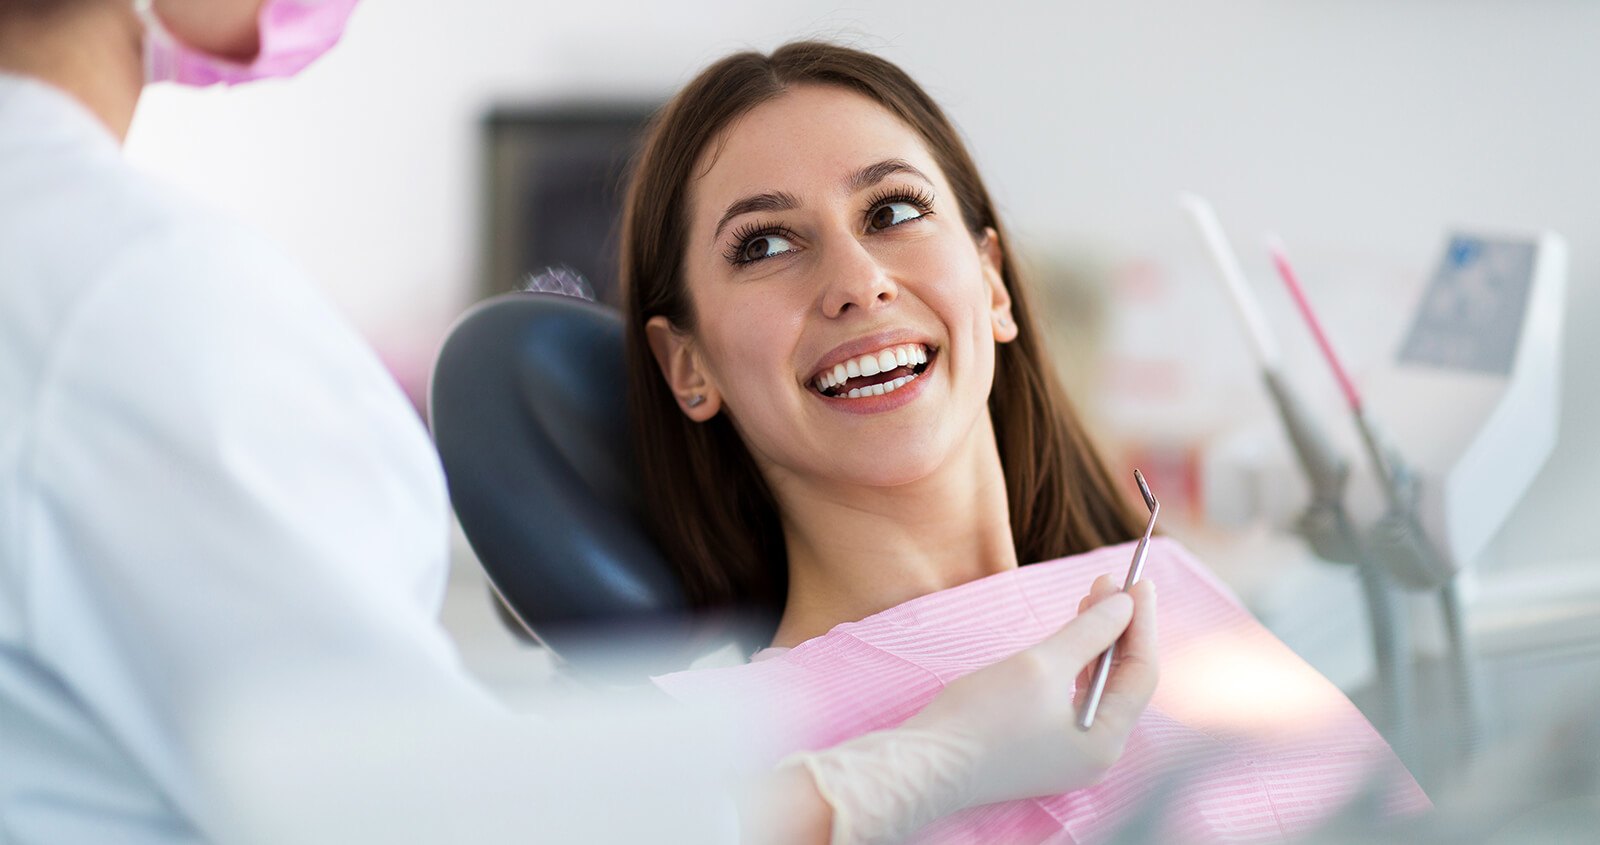 In Walnut Creek, CA Area Dentist Describes the Benefits of Good Oral Hygiene and Dental Care